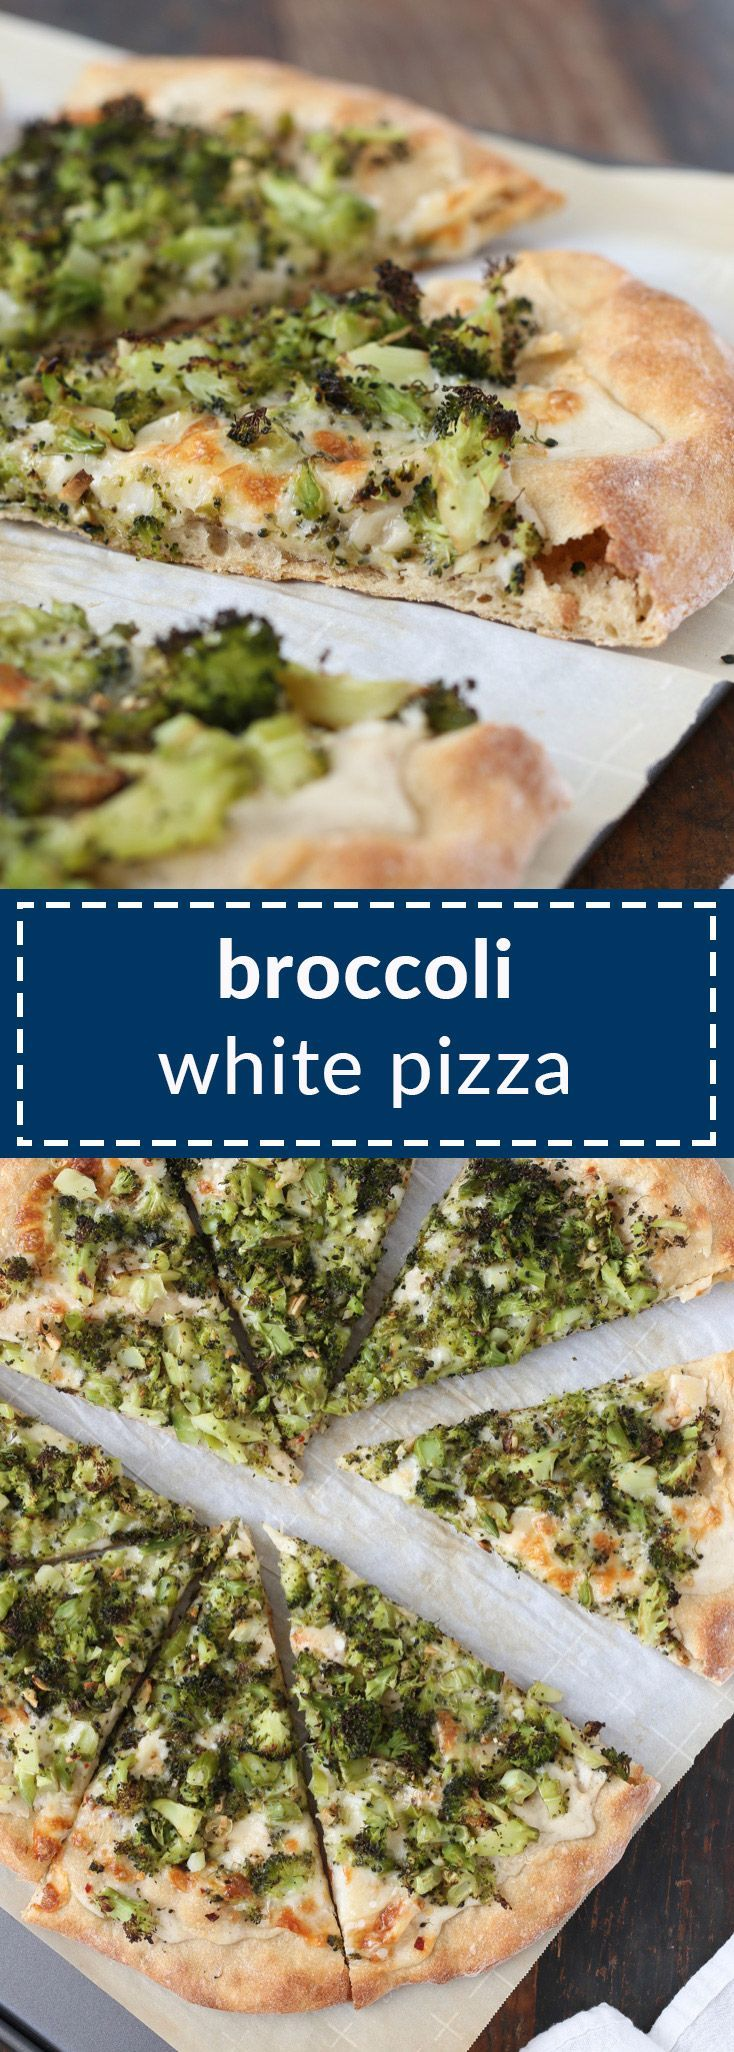 broccoli white pizza has roasted broccoli and a creamy garlic sauce that�s actually vegan – there�s an option to keep the whole pizza vegan/dairy free, if you want.